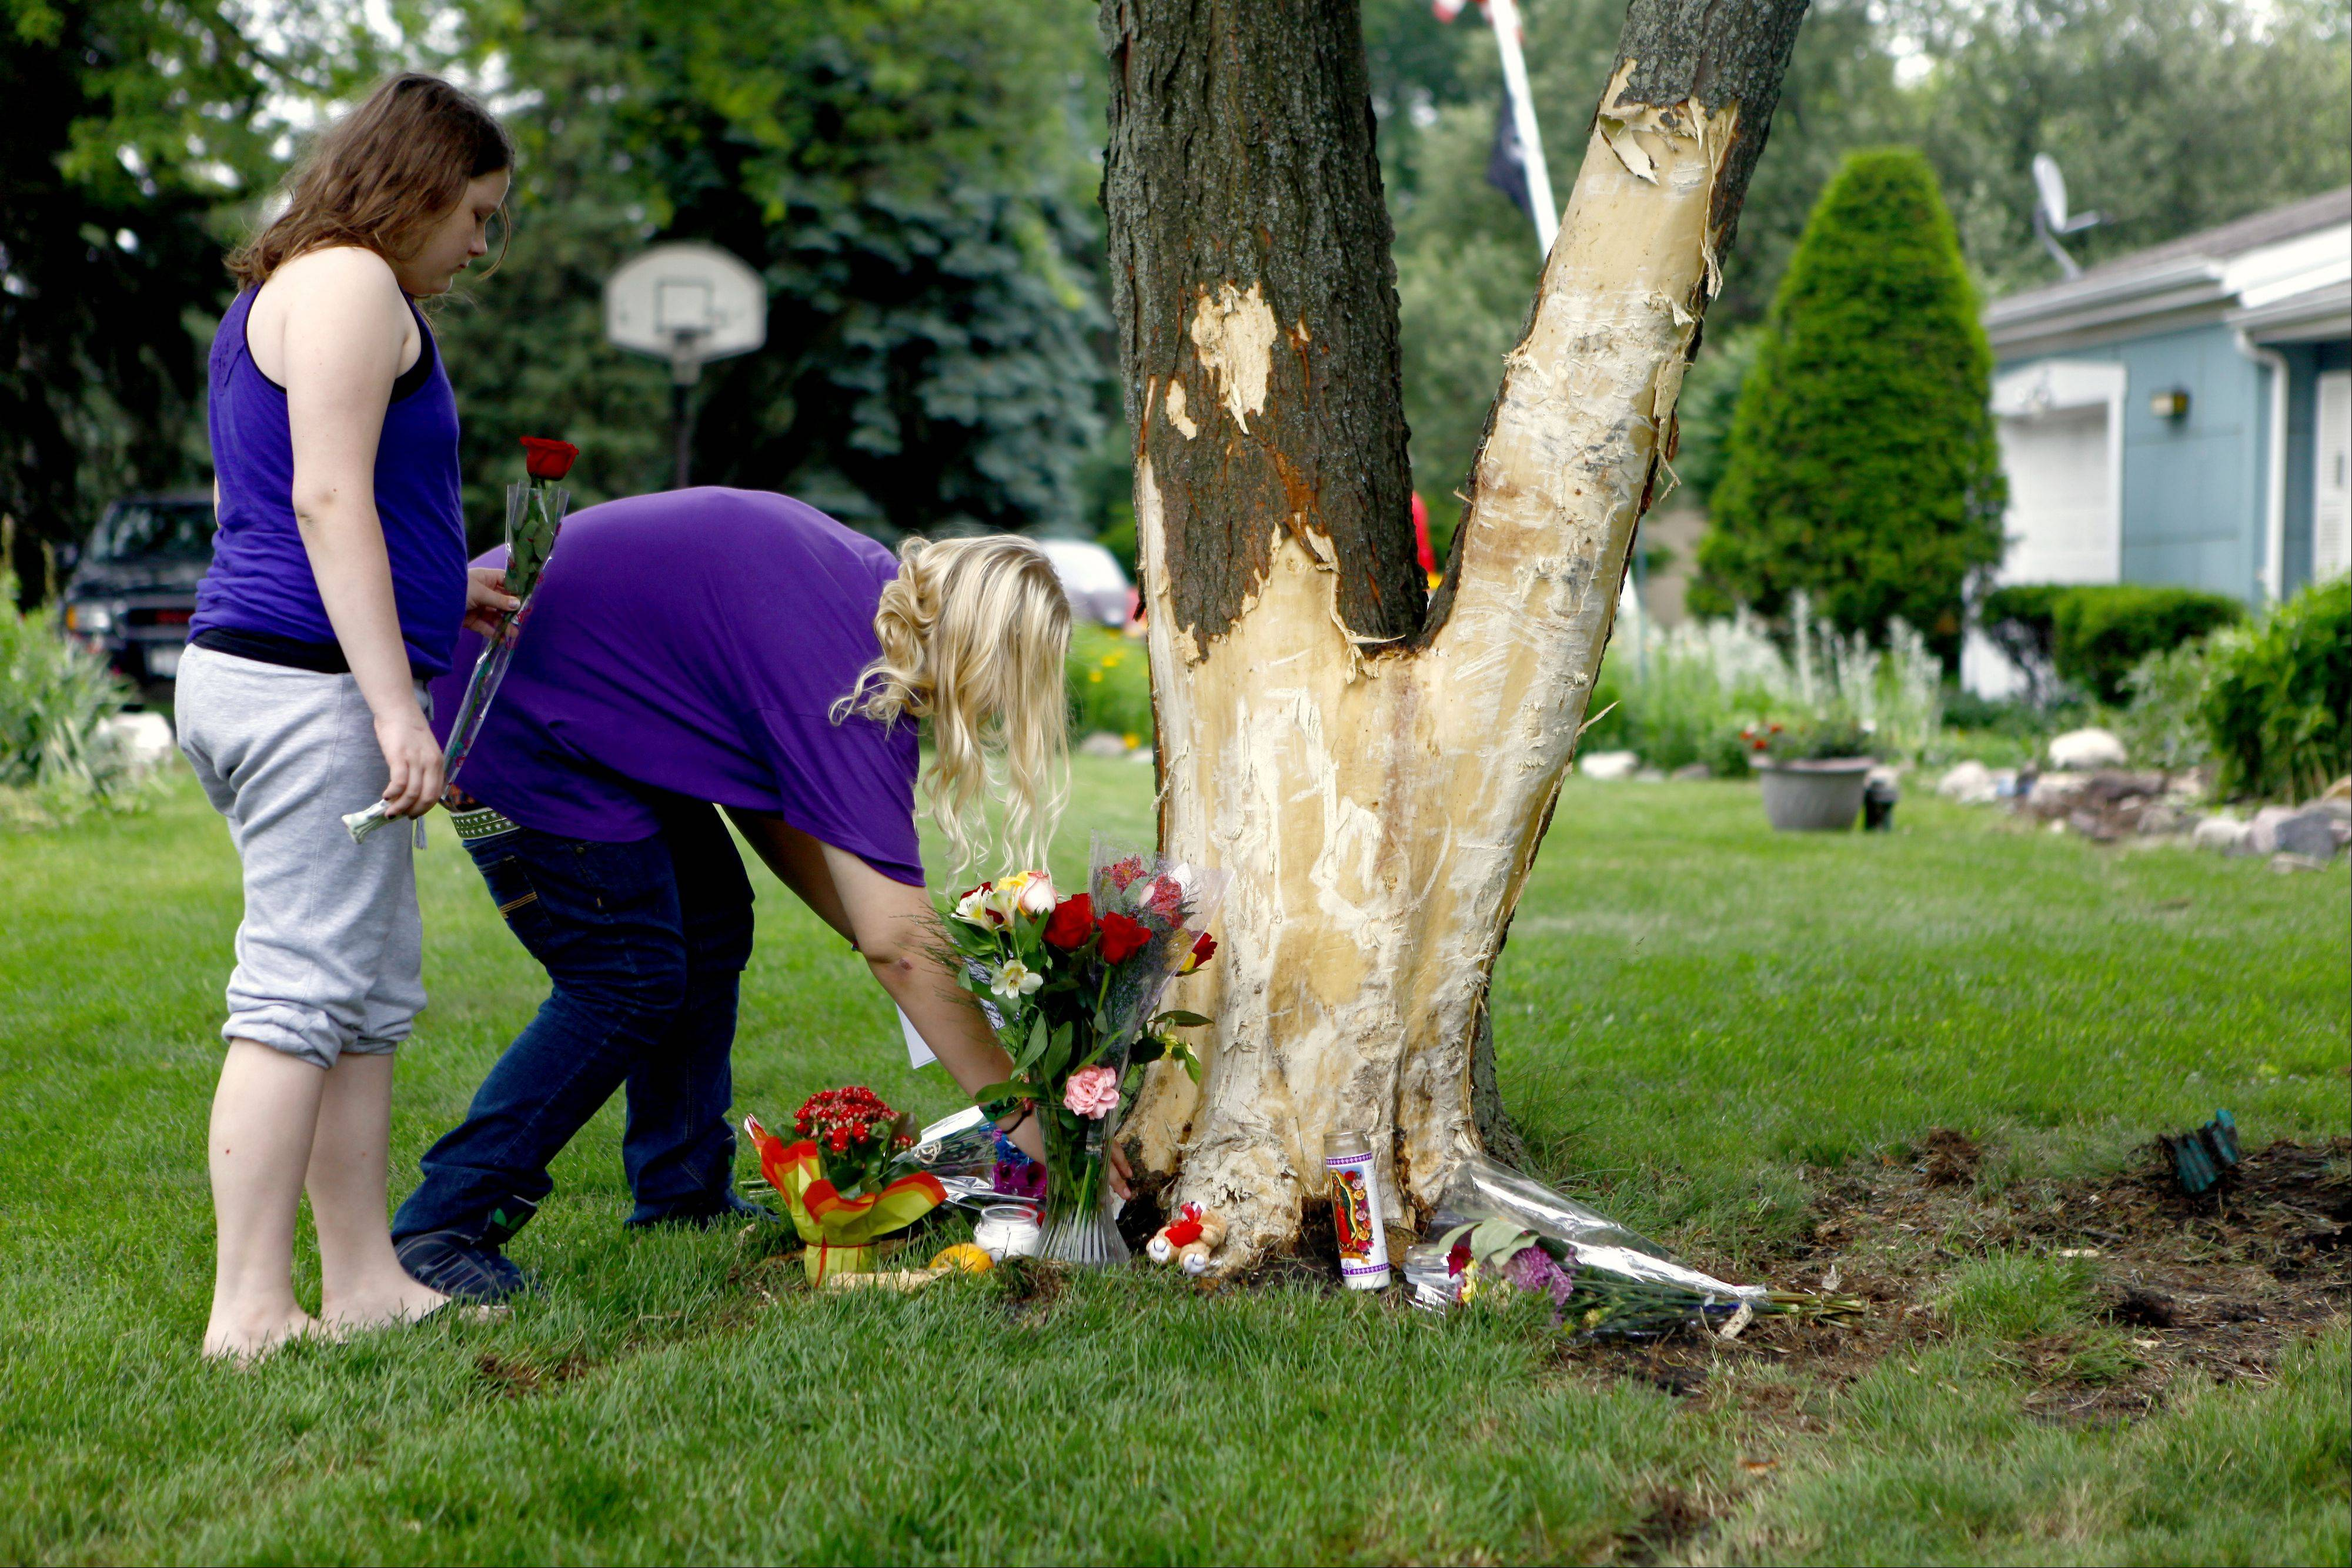 Stephanie Hanns, 13, right, of Mount Prospect and her sister, Angie Lehmann, 10, lay roses Sunday afternoon at the tree where three Northwest suburban teens were killed early Saturday in Prospect Heights.